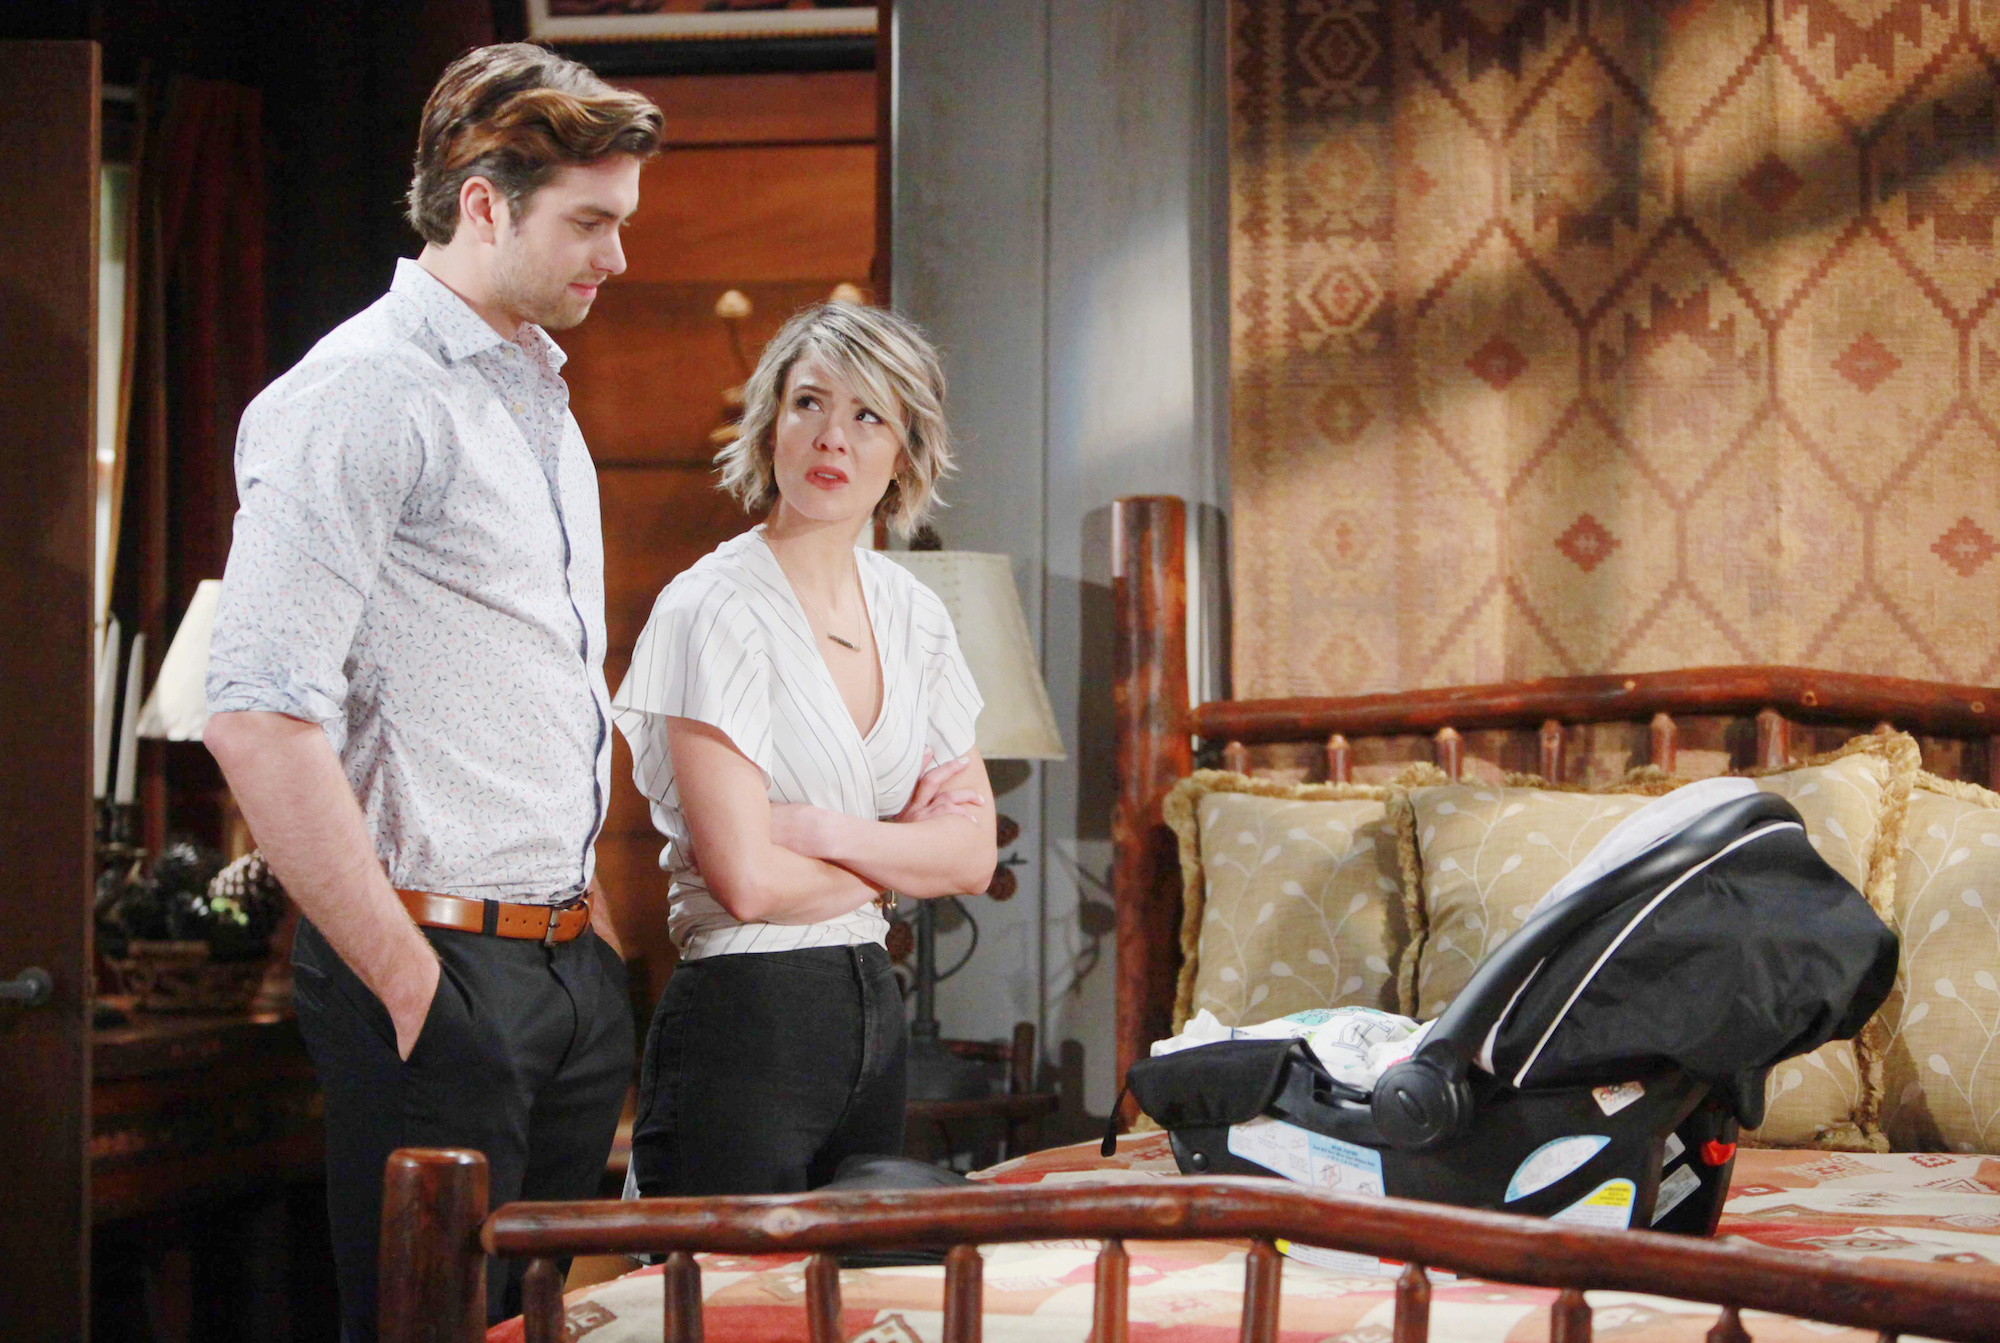 Caroline pleads for Thomas to reconsider.